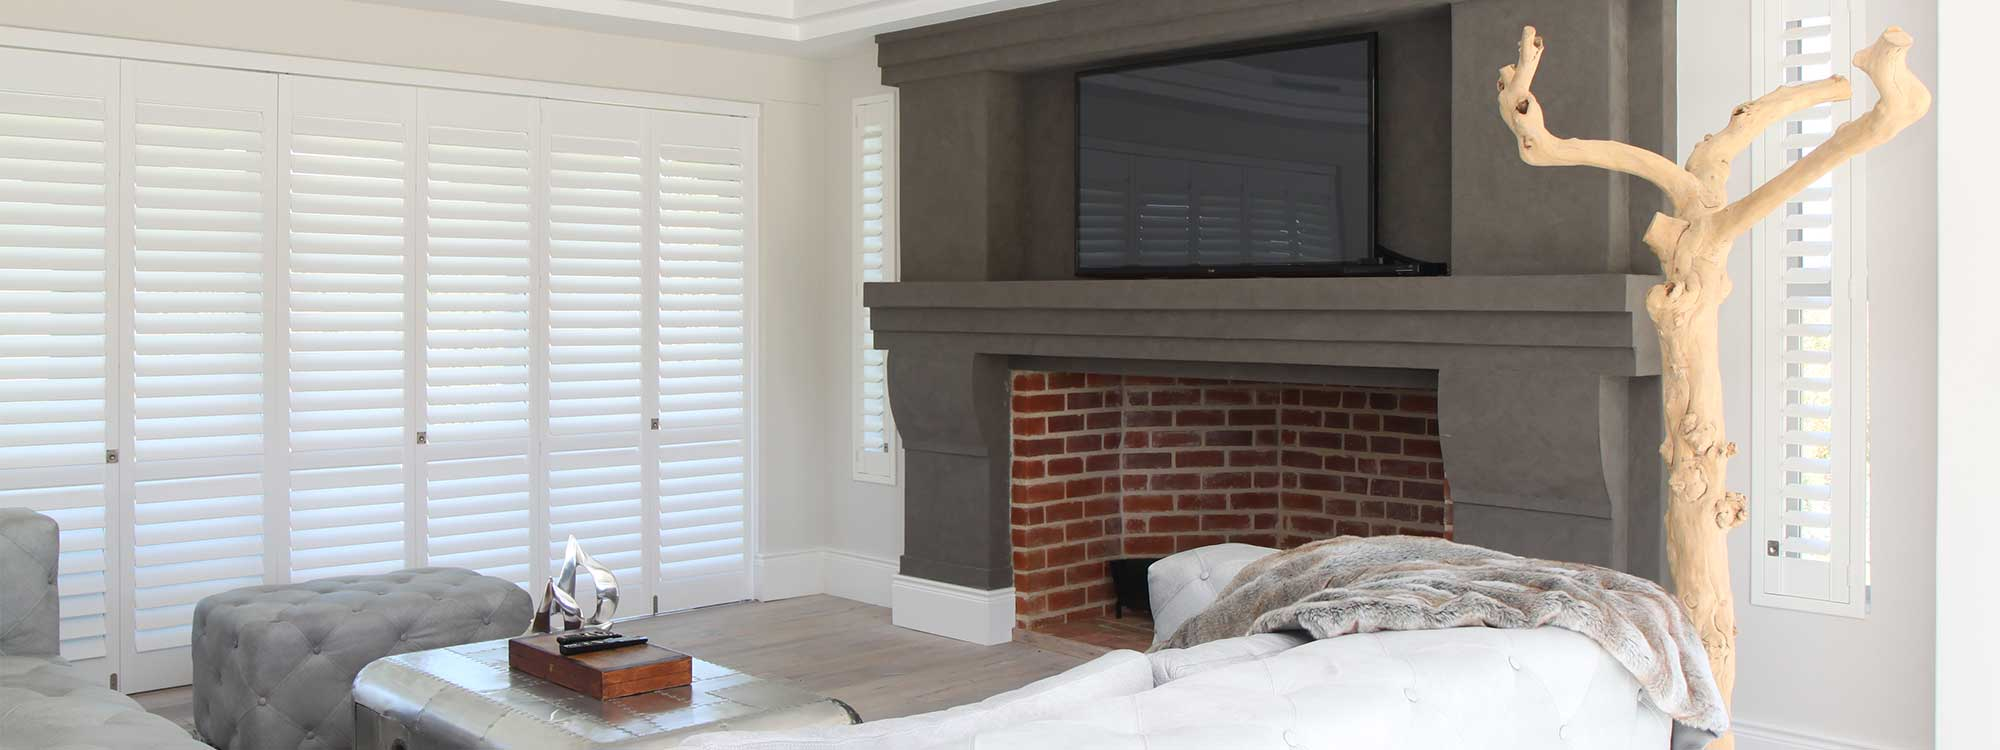 Decowood-shutters-living-area-lounge